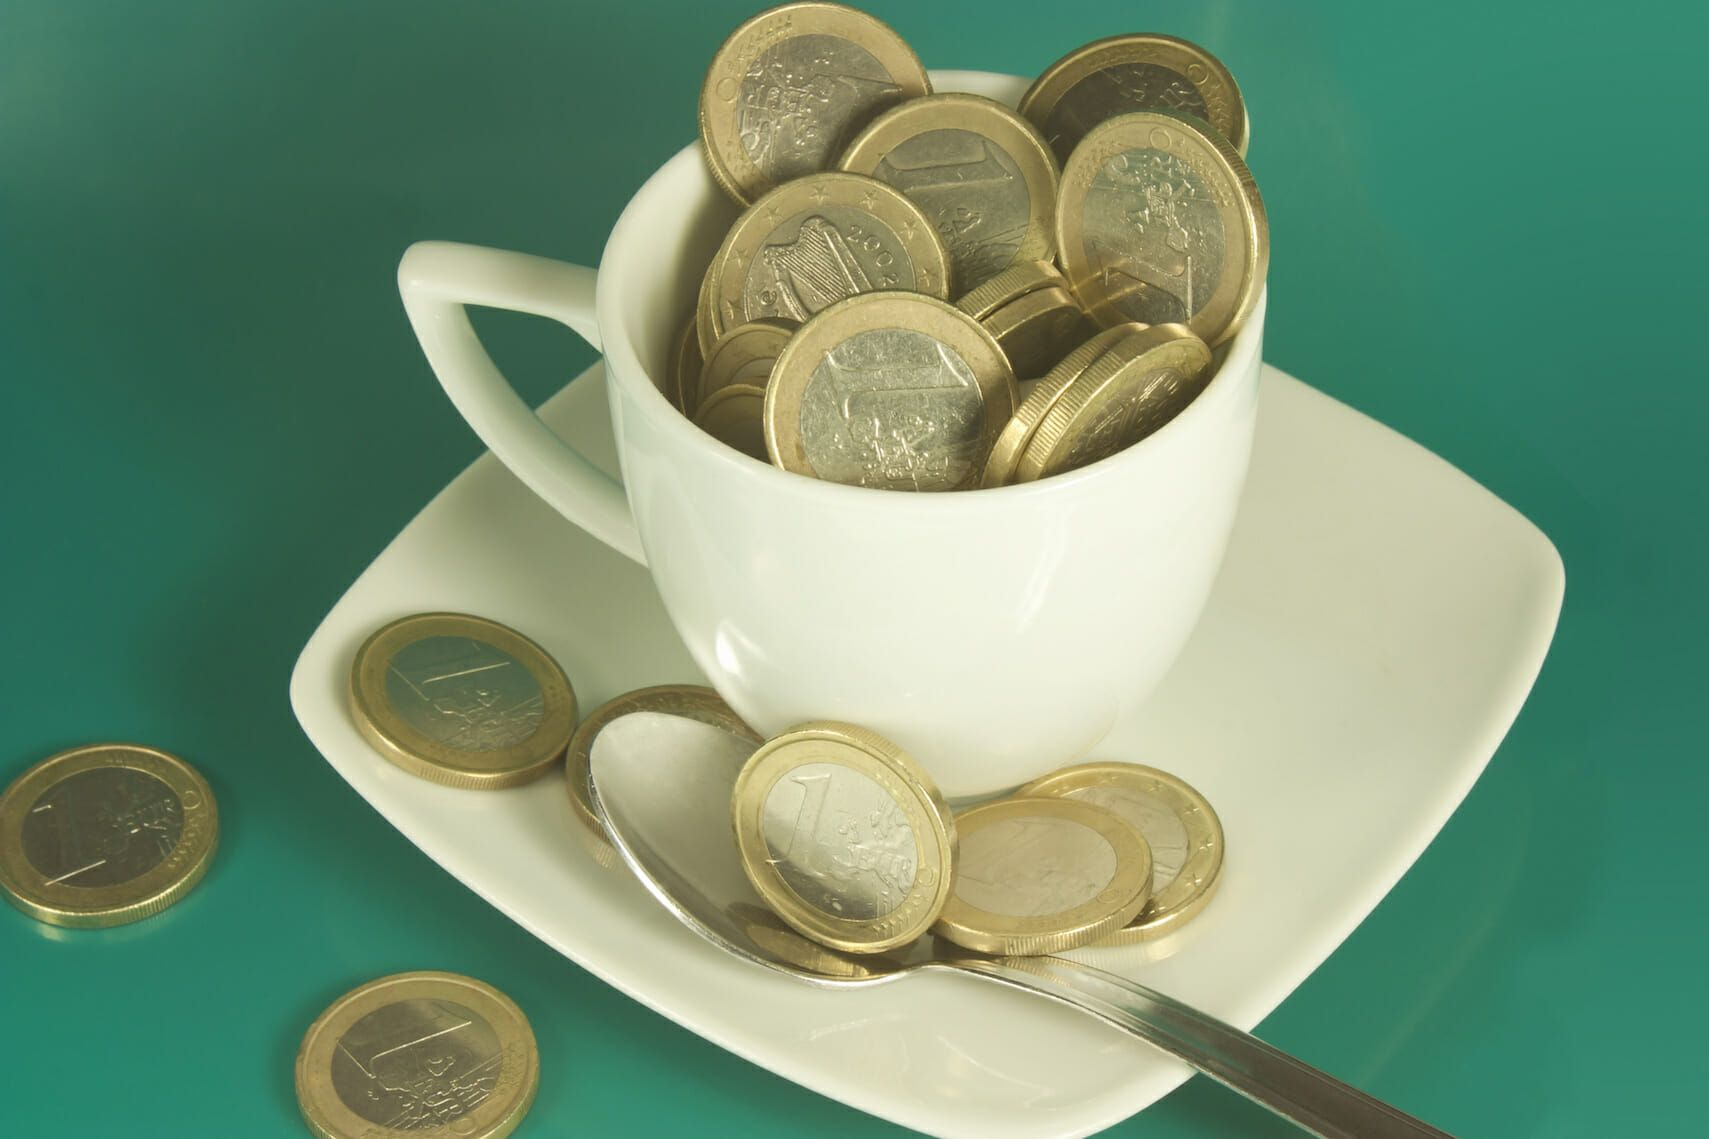 Cost Recovery Method- Cup with Euros in it